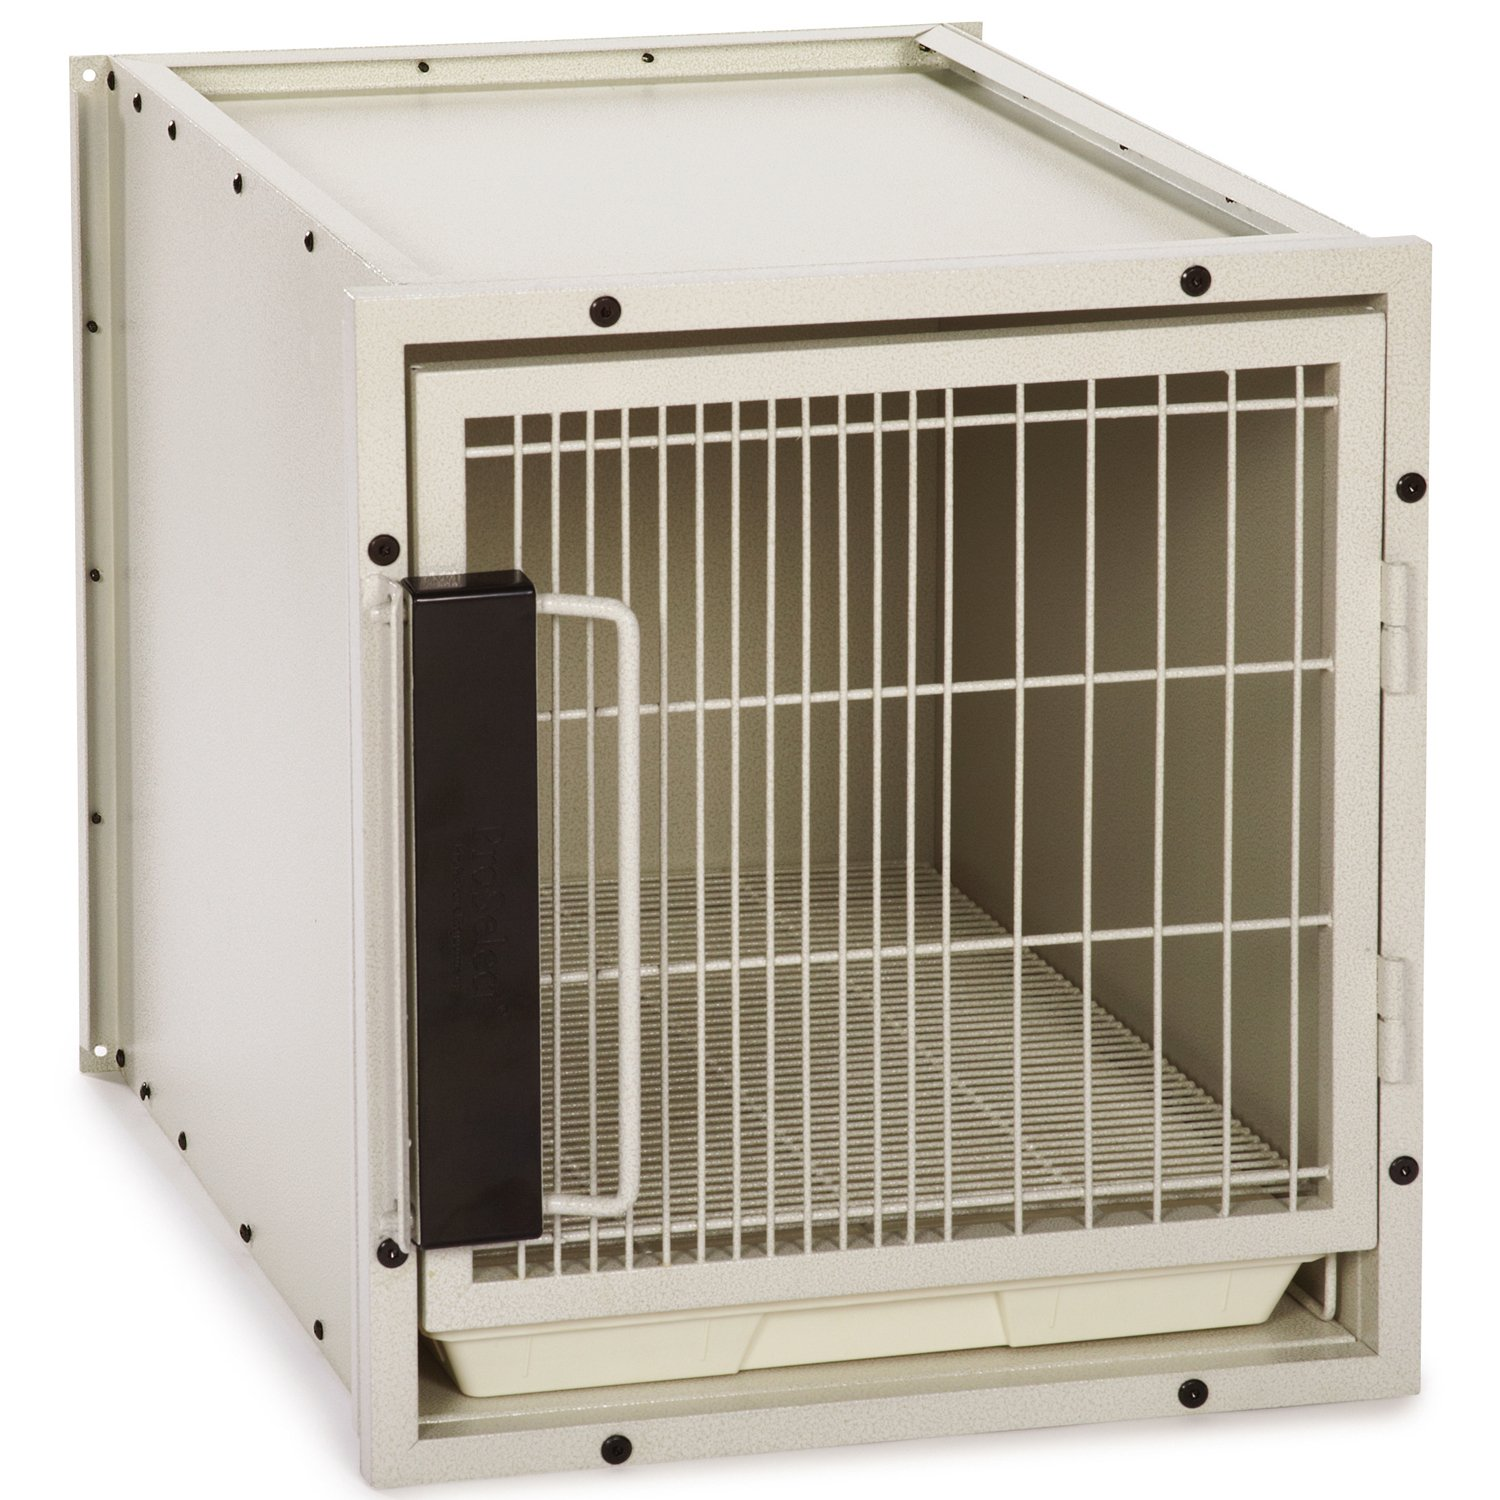 ProSelect Steel Modular Kennel Pet Cage, Small, Sandstone by Proselect (PRPQC)